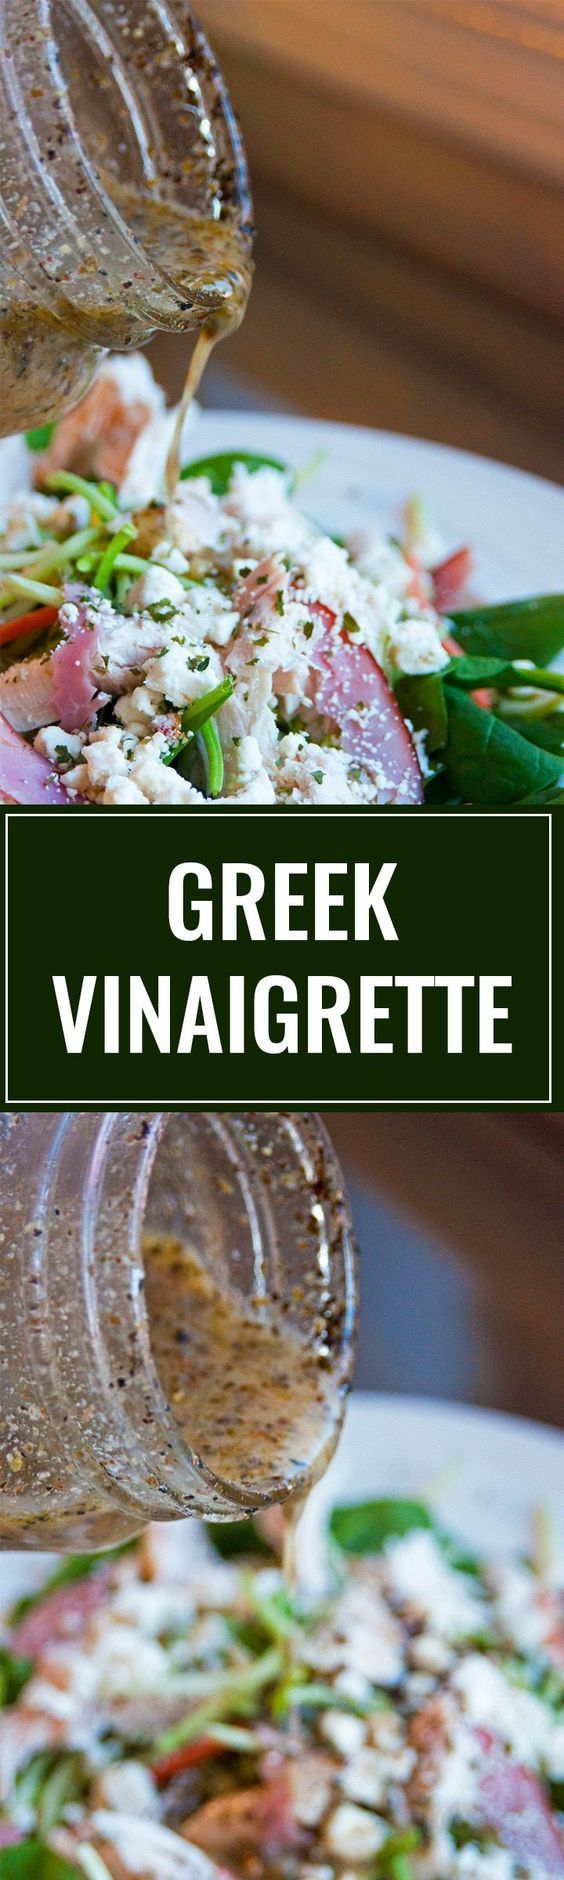 Homemade Greek Vinaigrette. This homemade salad dressing is delicious over salads, as a marinade and on a greek pizza! This healthy recipe packs a clean eating punch!   http://thebewitchinkitchen.com